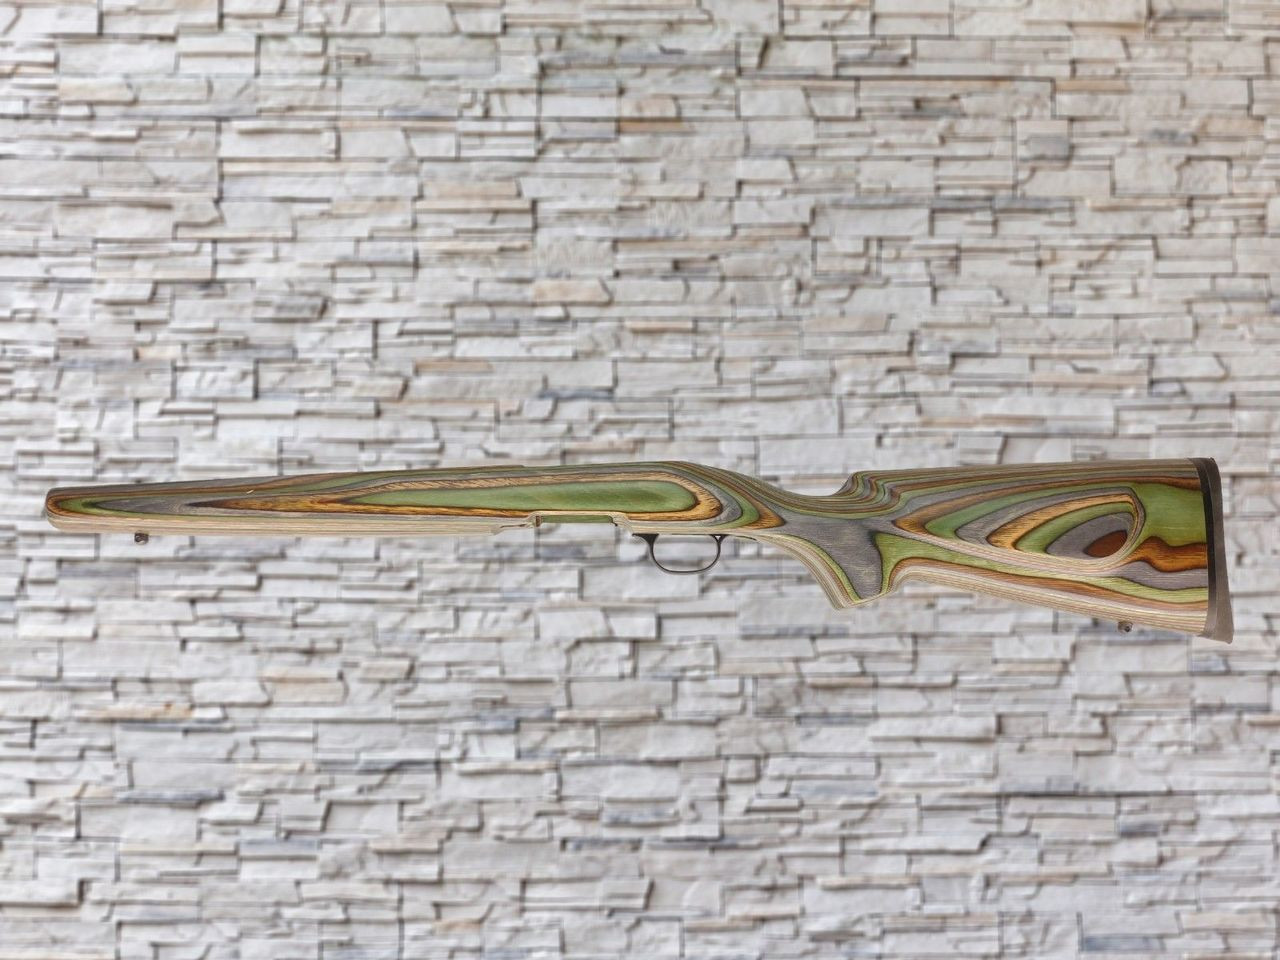 Boyds Classic Forest Camo Wood Stock for Savage B-Mag Bull Barrel Rifles